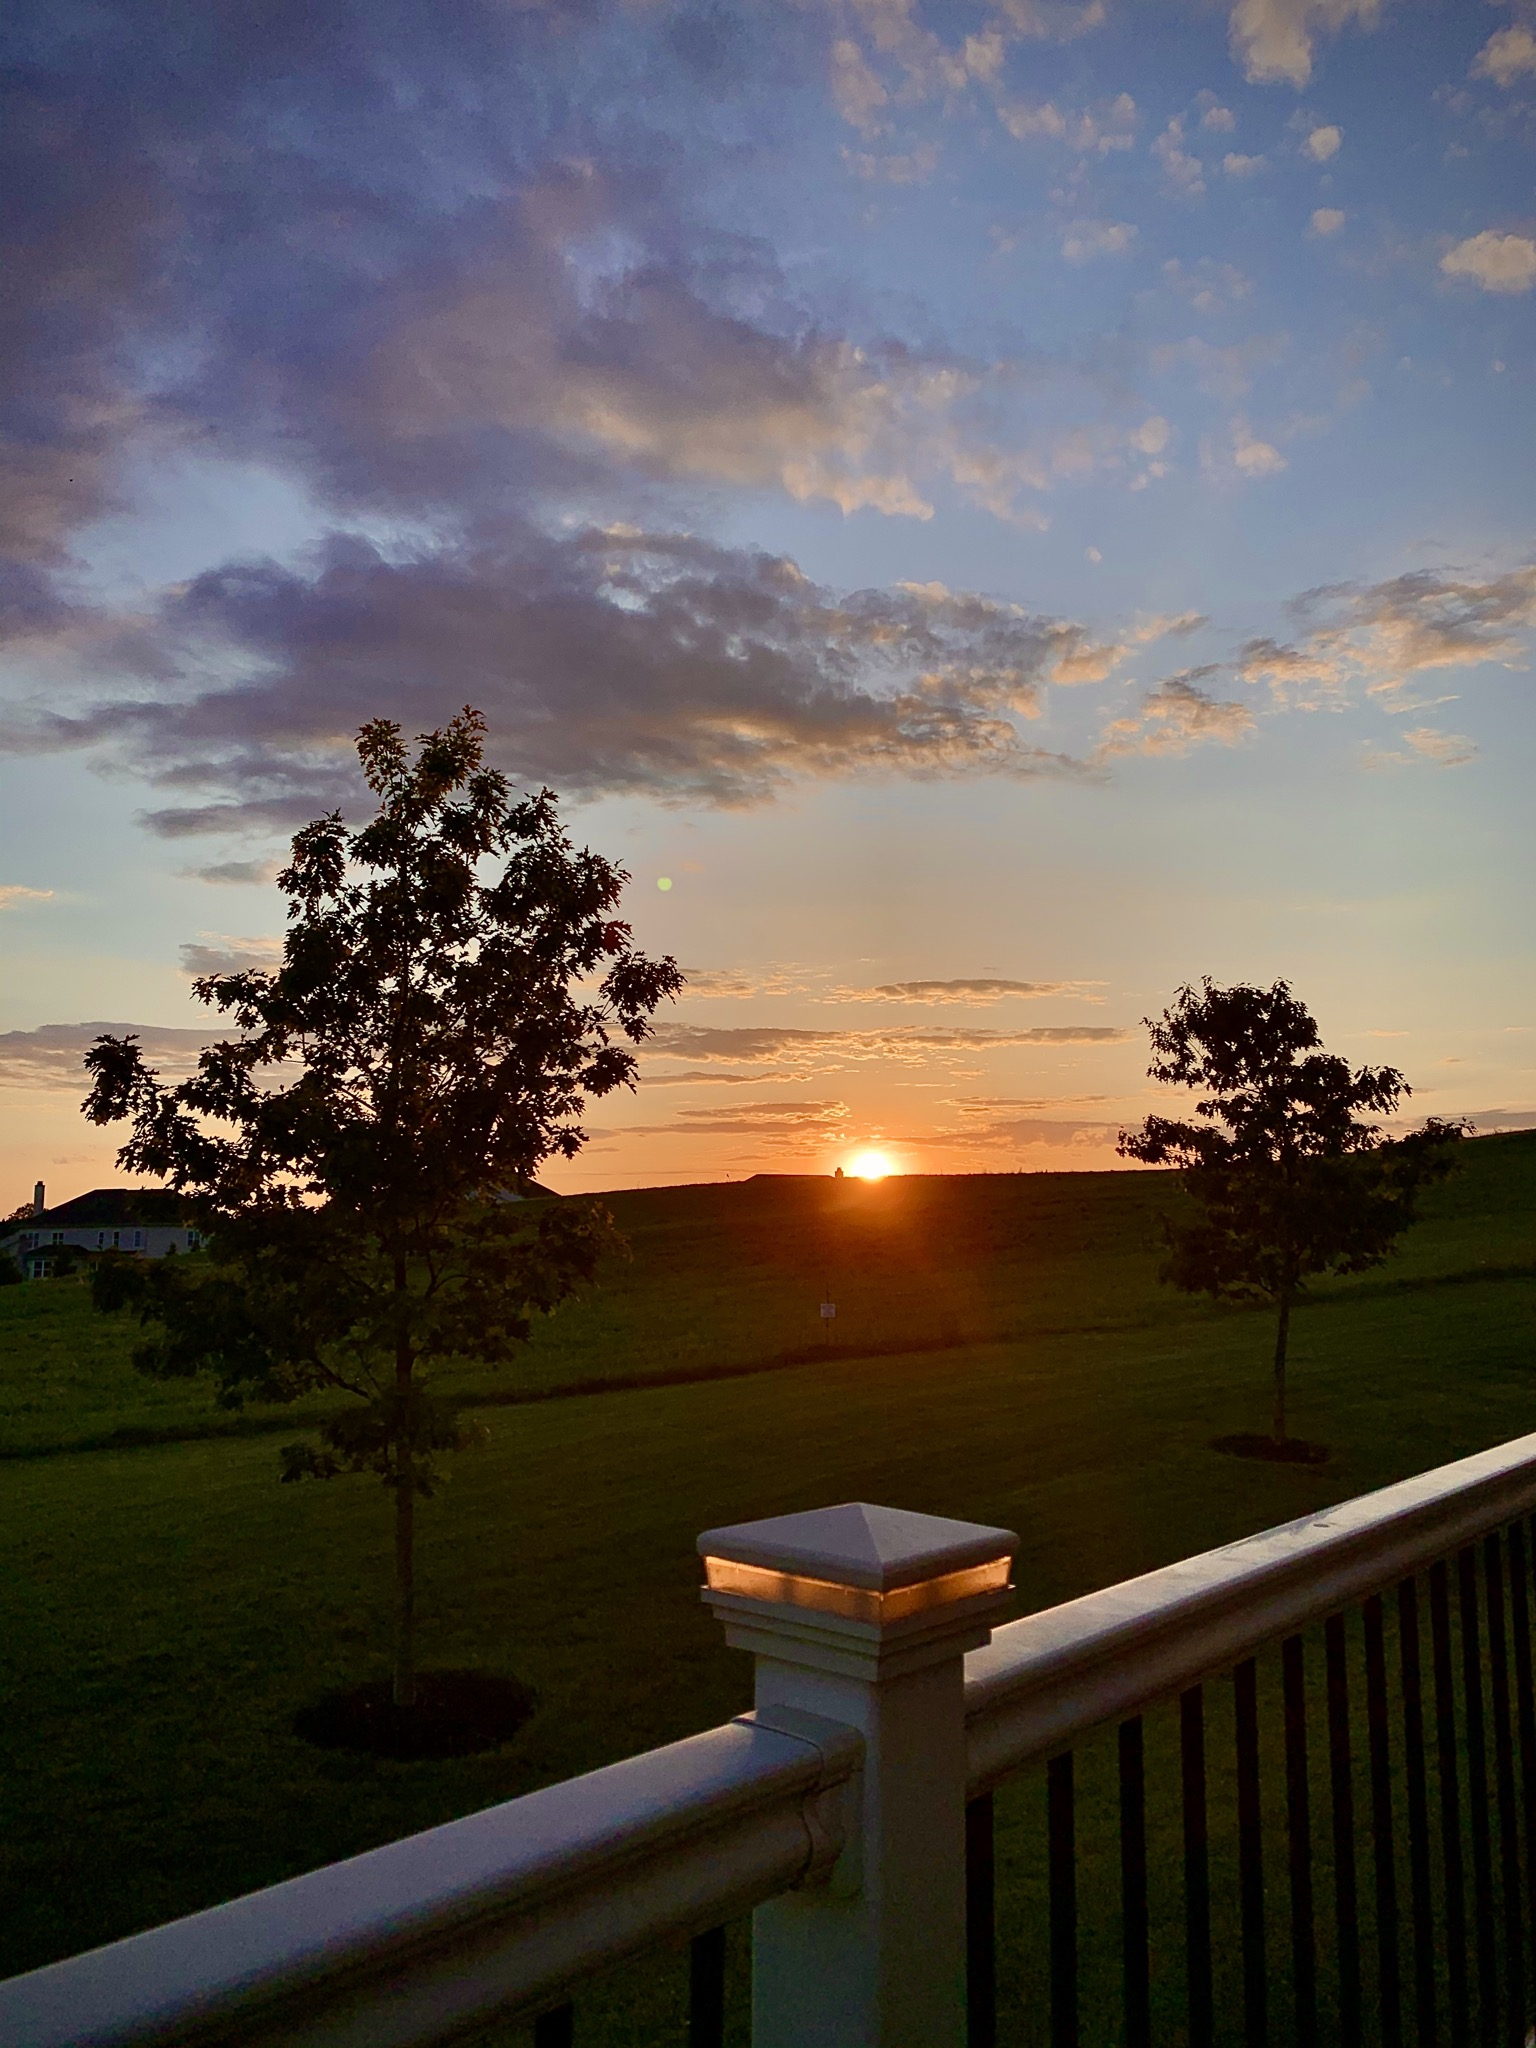 View of the Sunset from the backyard during Covid